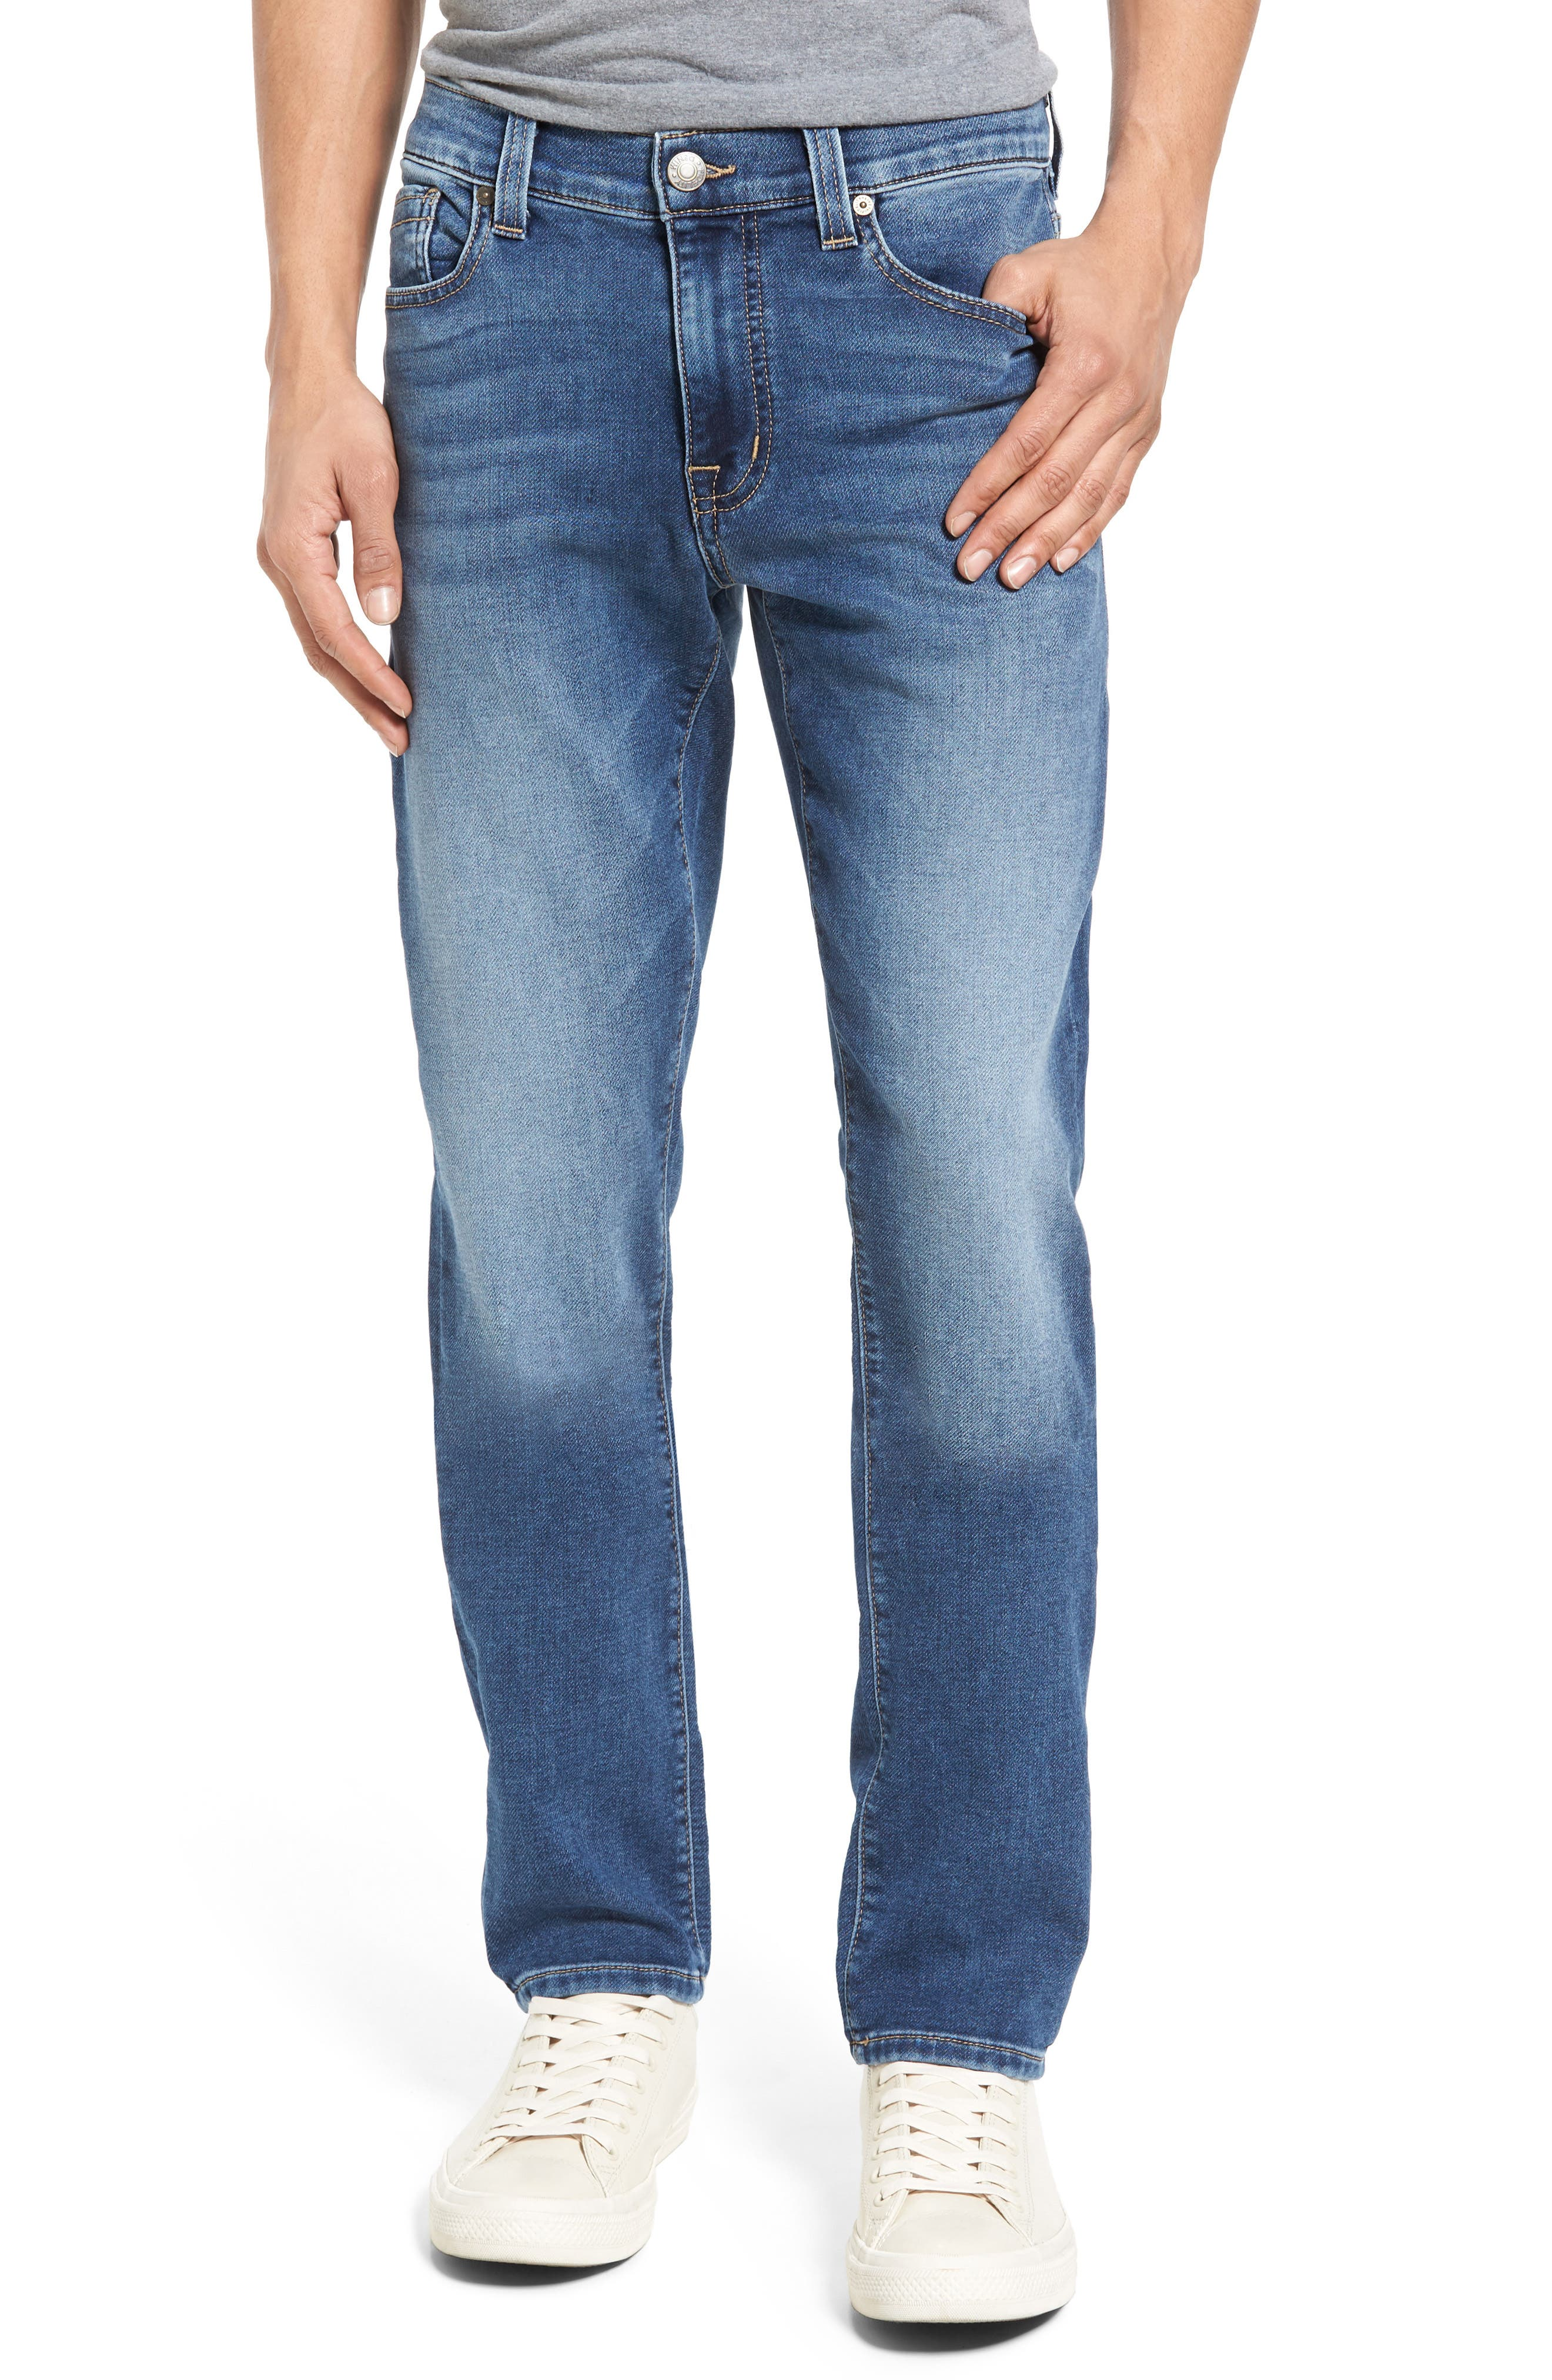 Fideliety Denim Torino Slim Fit Jeans,                         Main,                         color, 424